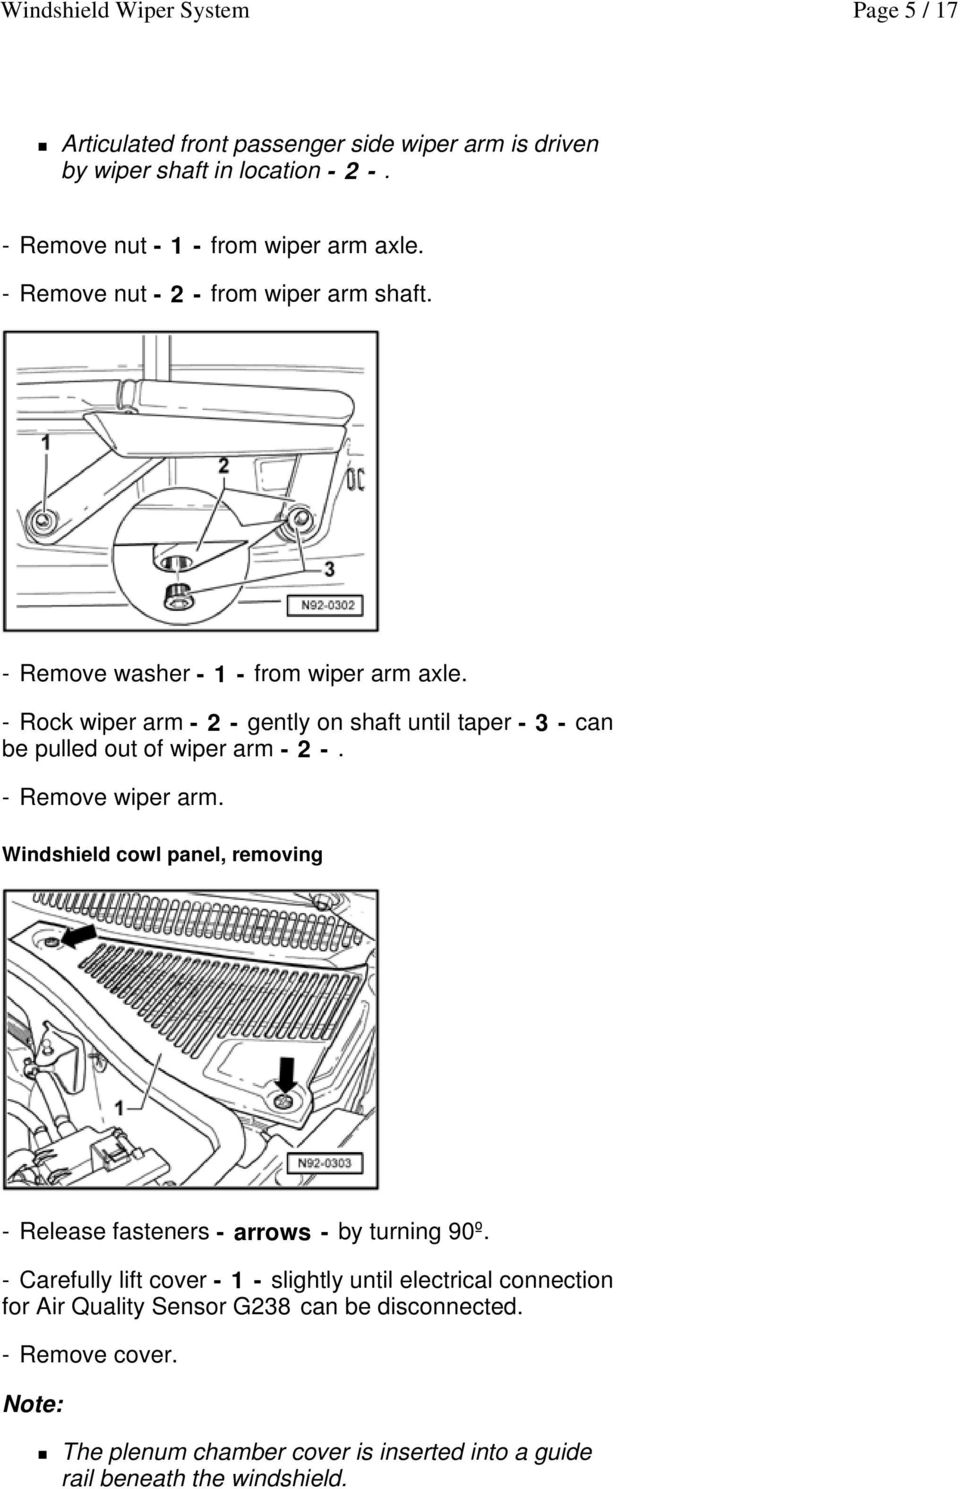 Windshield Wiper System Pdf Automatic Rain Sensing Control Circuit Diagram Rock Arm 2 Gently On Shaft Until Taper 3 Can